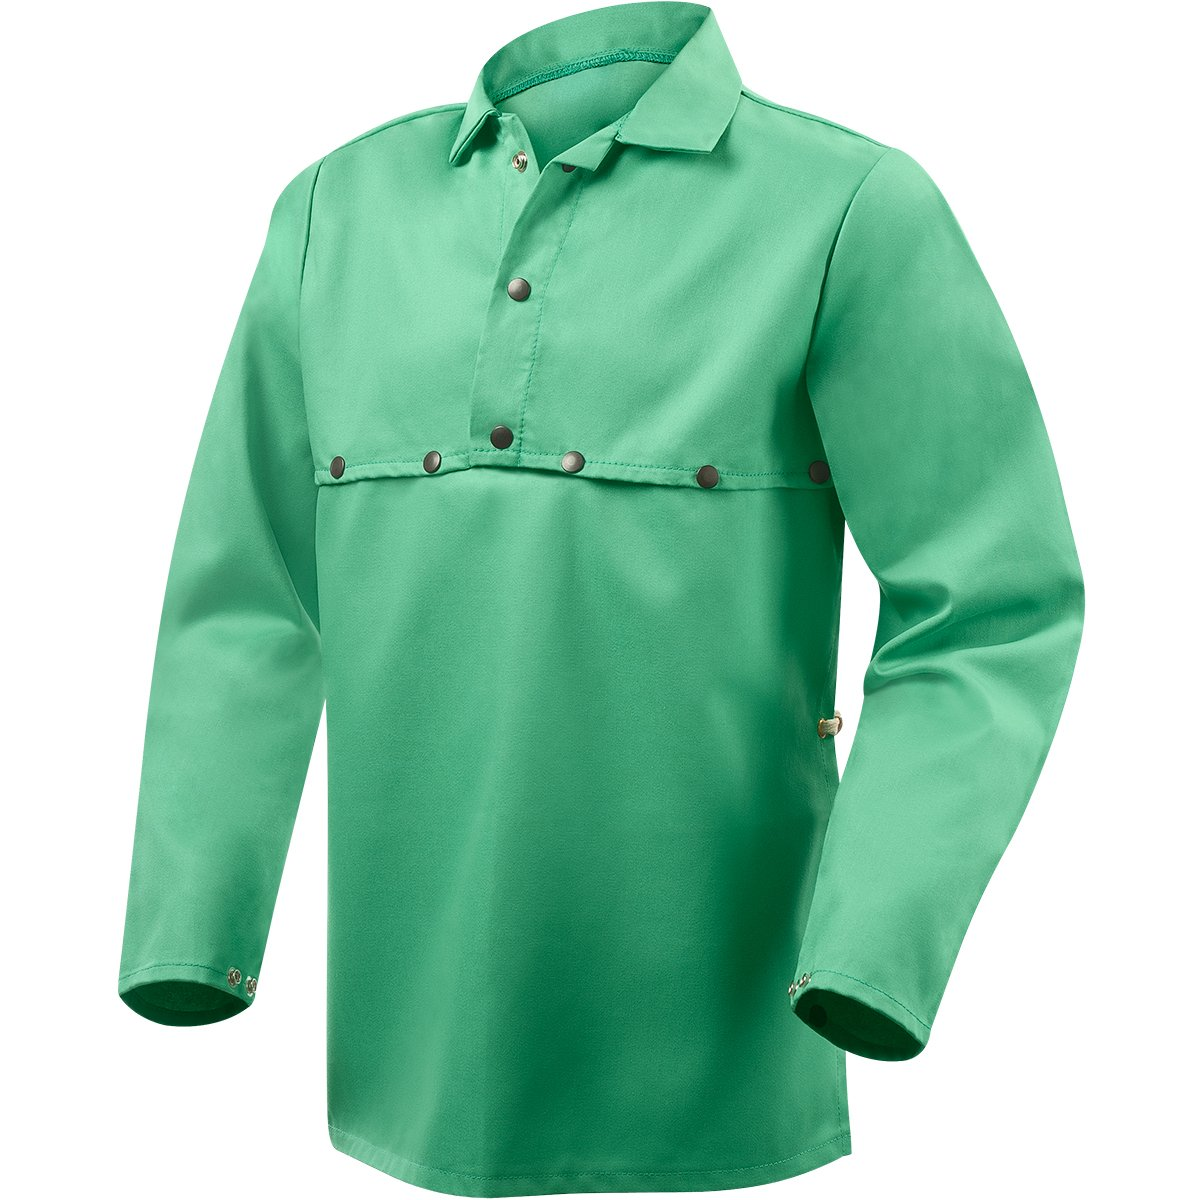 Steiner 1033-L Cape Sleeve With 19-Inch Bib, Weldlite Green 9.5-Ounce Flame Retardant Cotton, Large